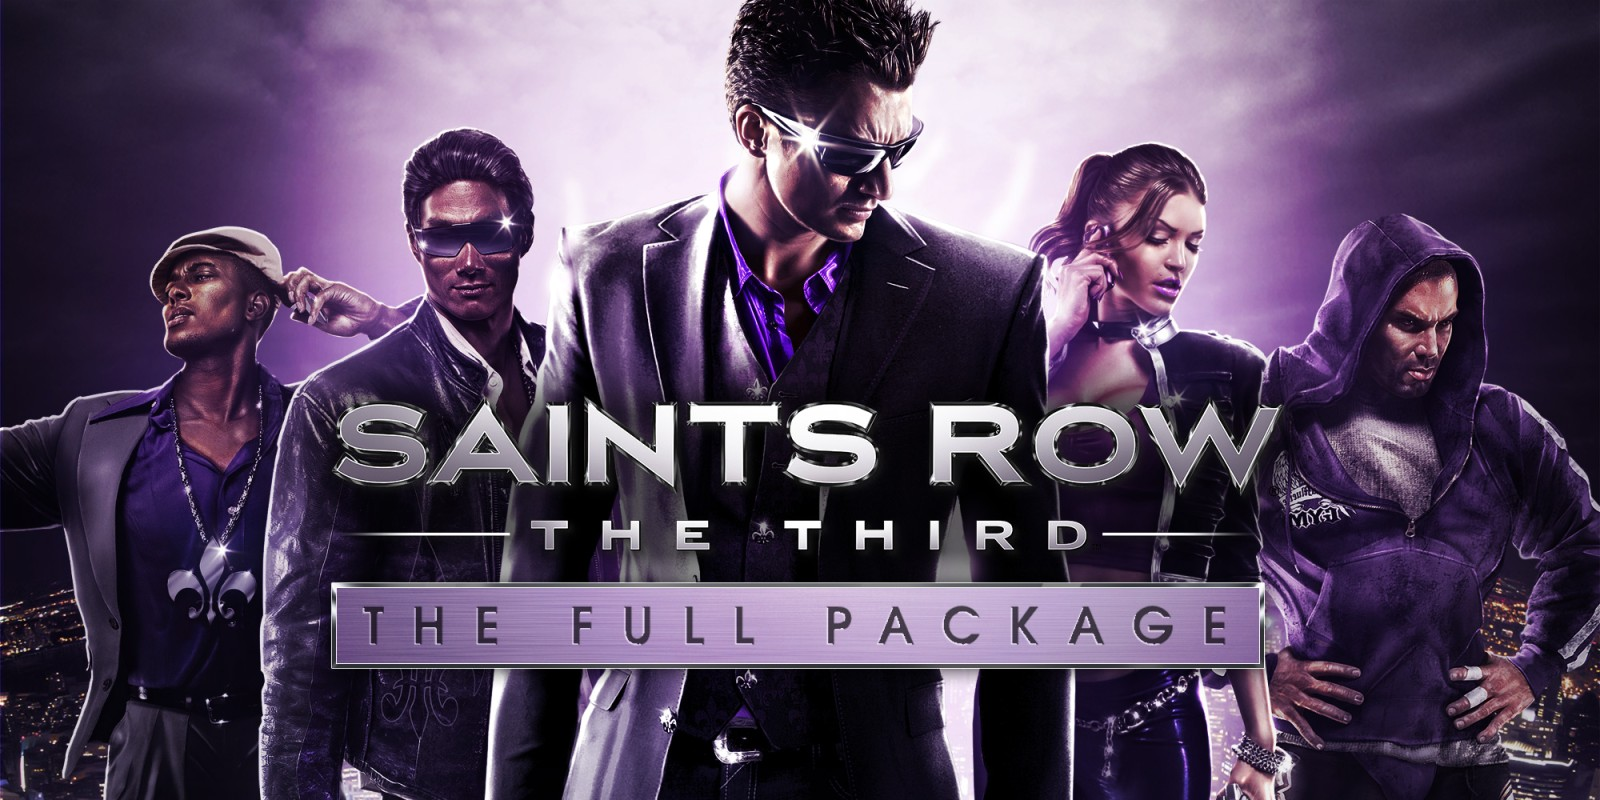 Saints Row: The Third - The Full Package details - Nintendo Switch Online app supported, frame rate, resolution, more